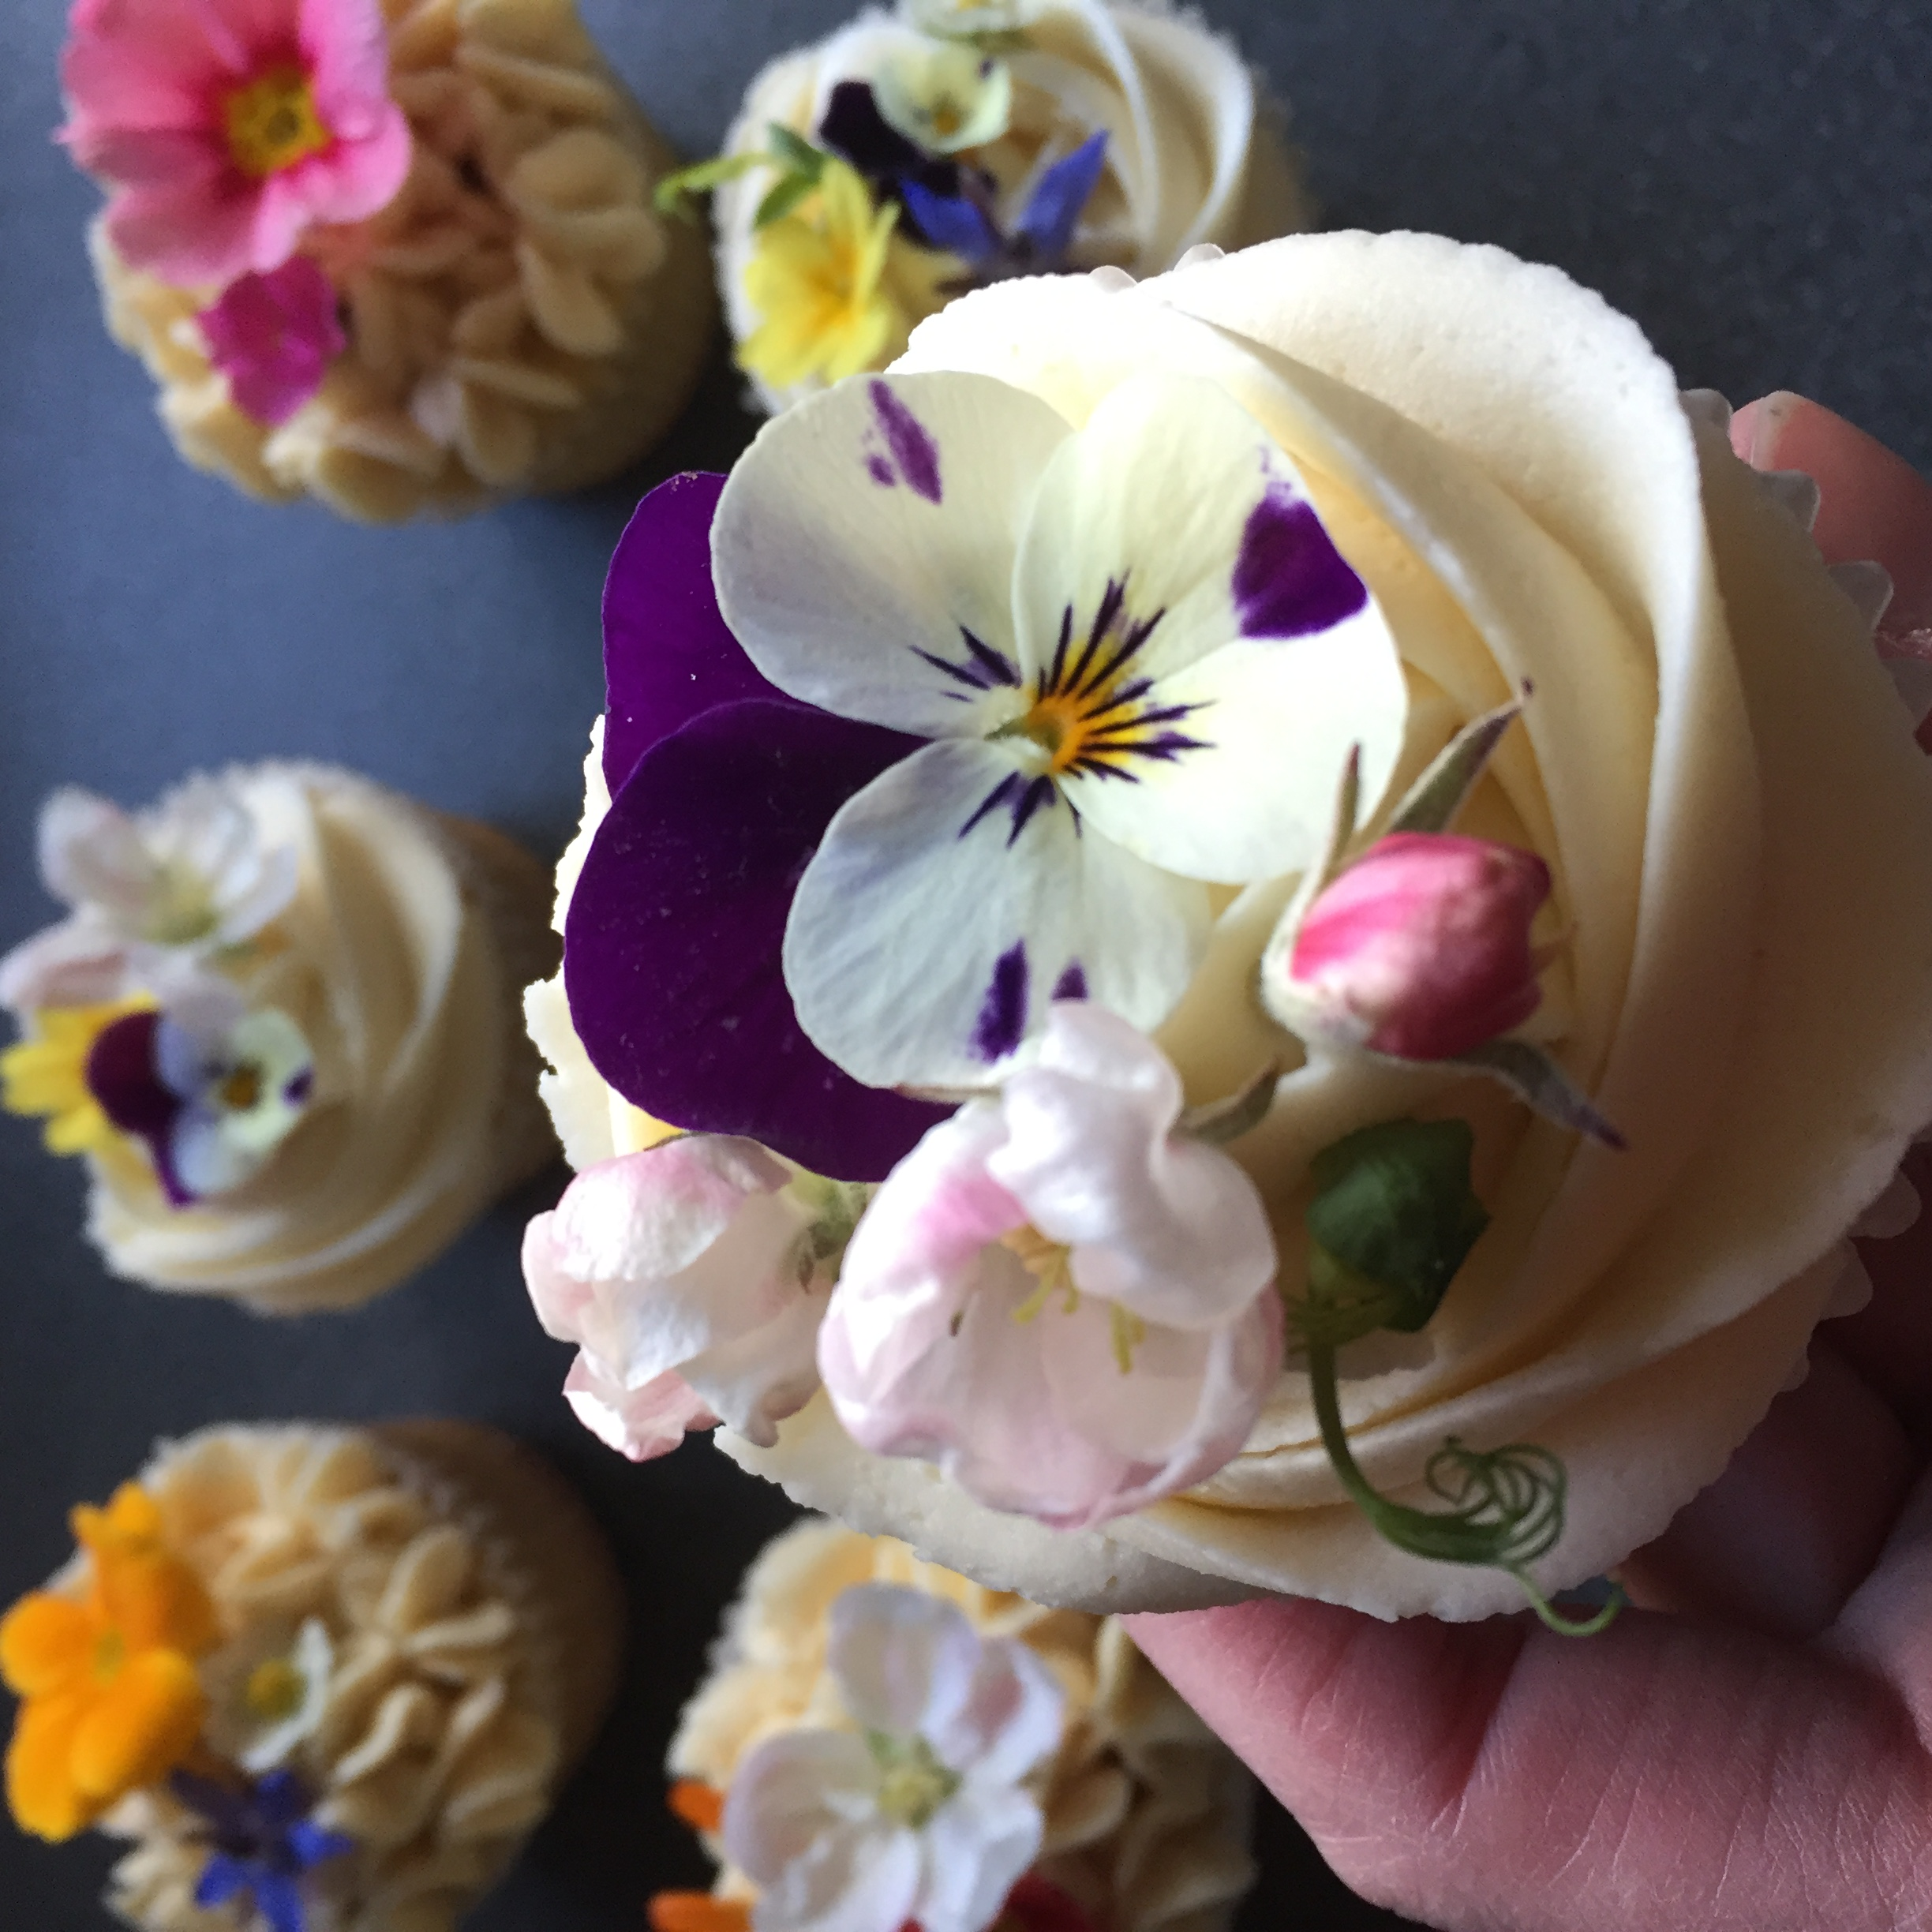 Edible flower cupcakes